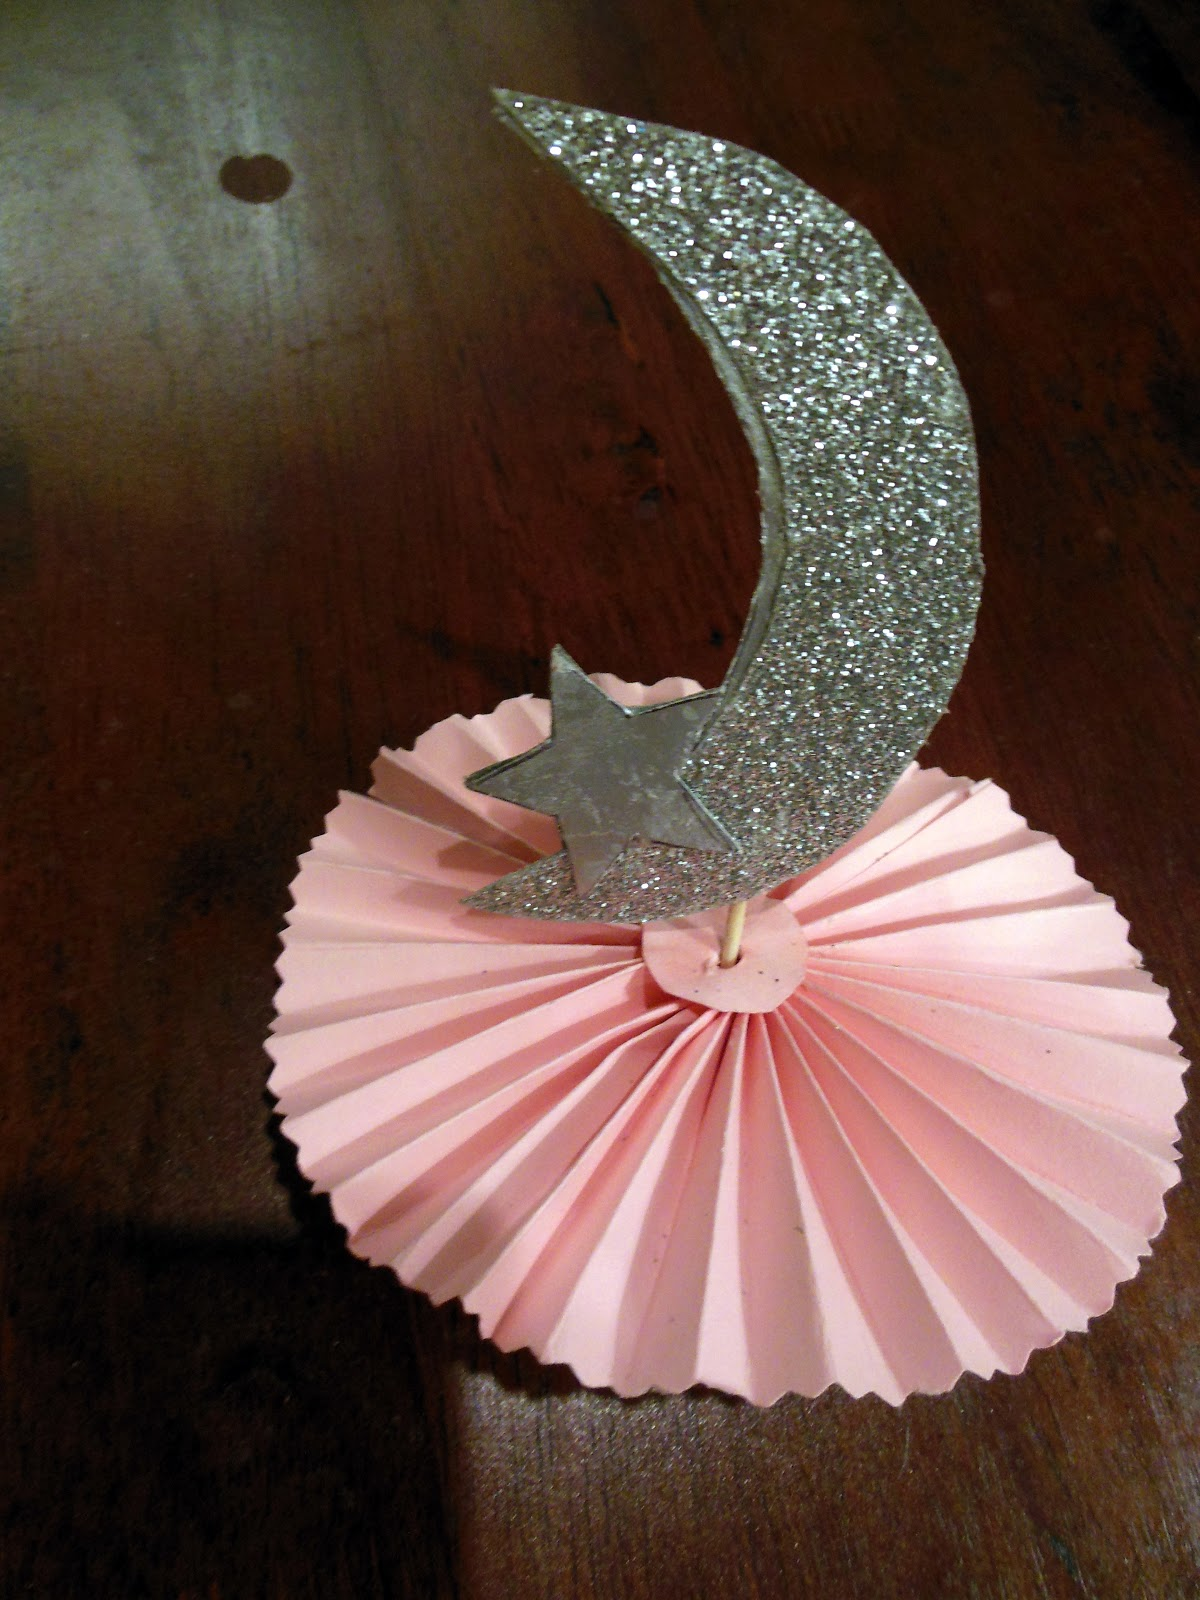 Imperfectly Possible The Almost Impossible Ballerina  Astronaut - Astronaut decorations